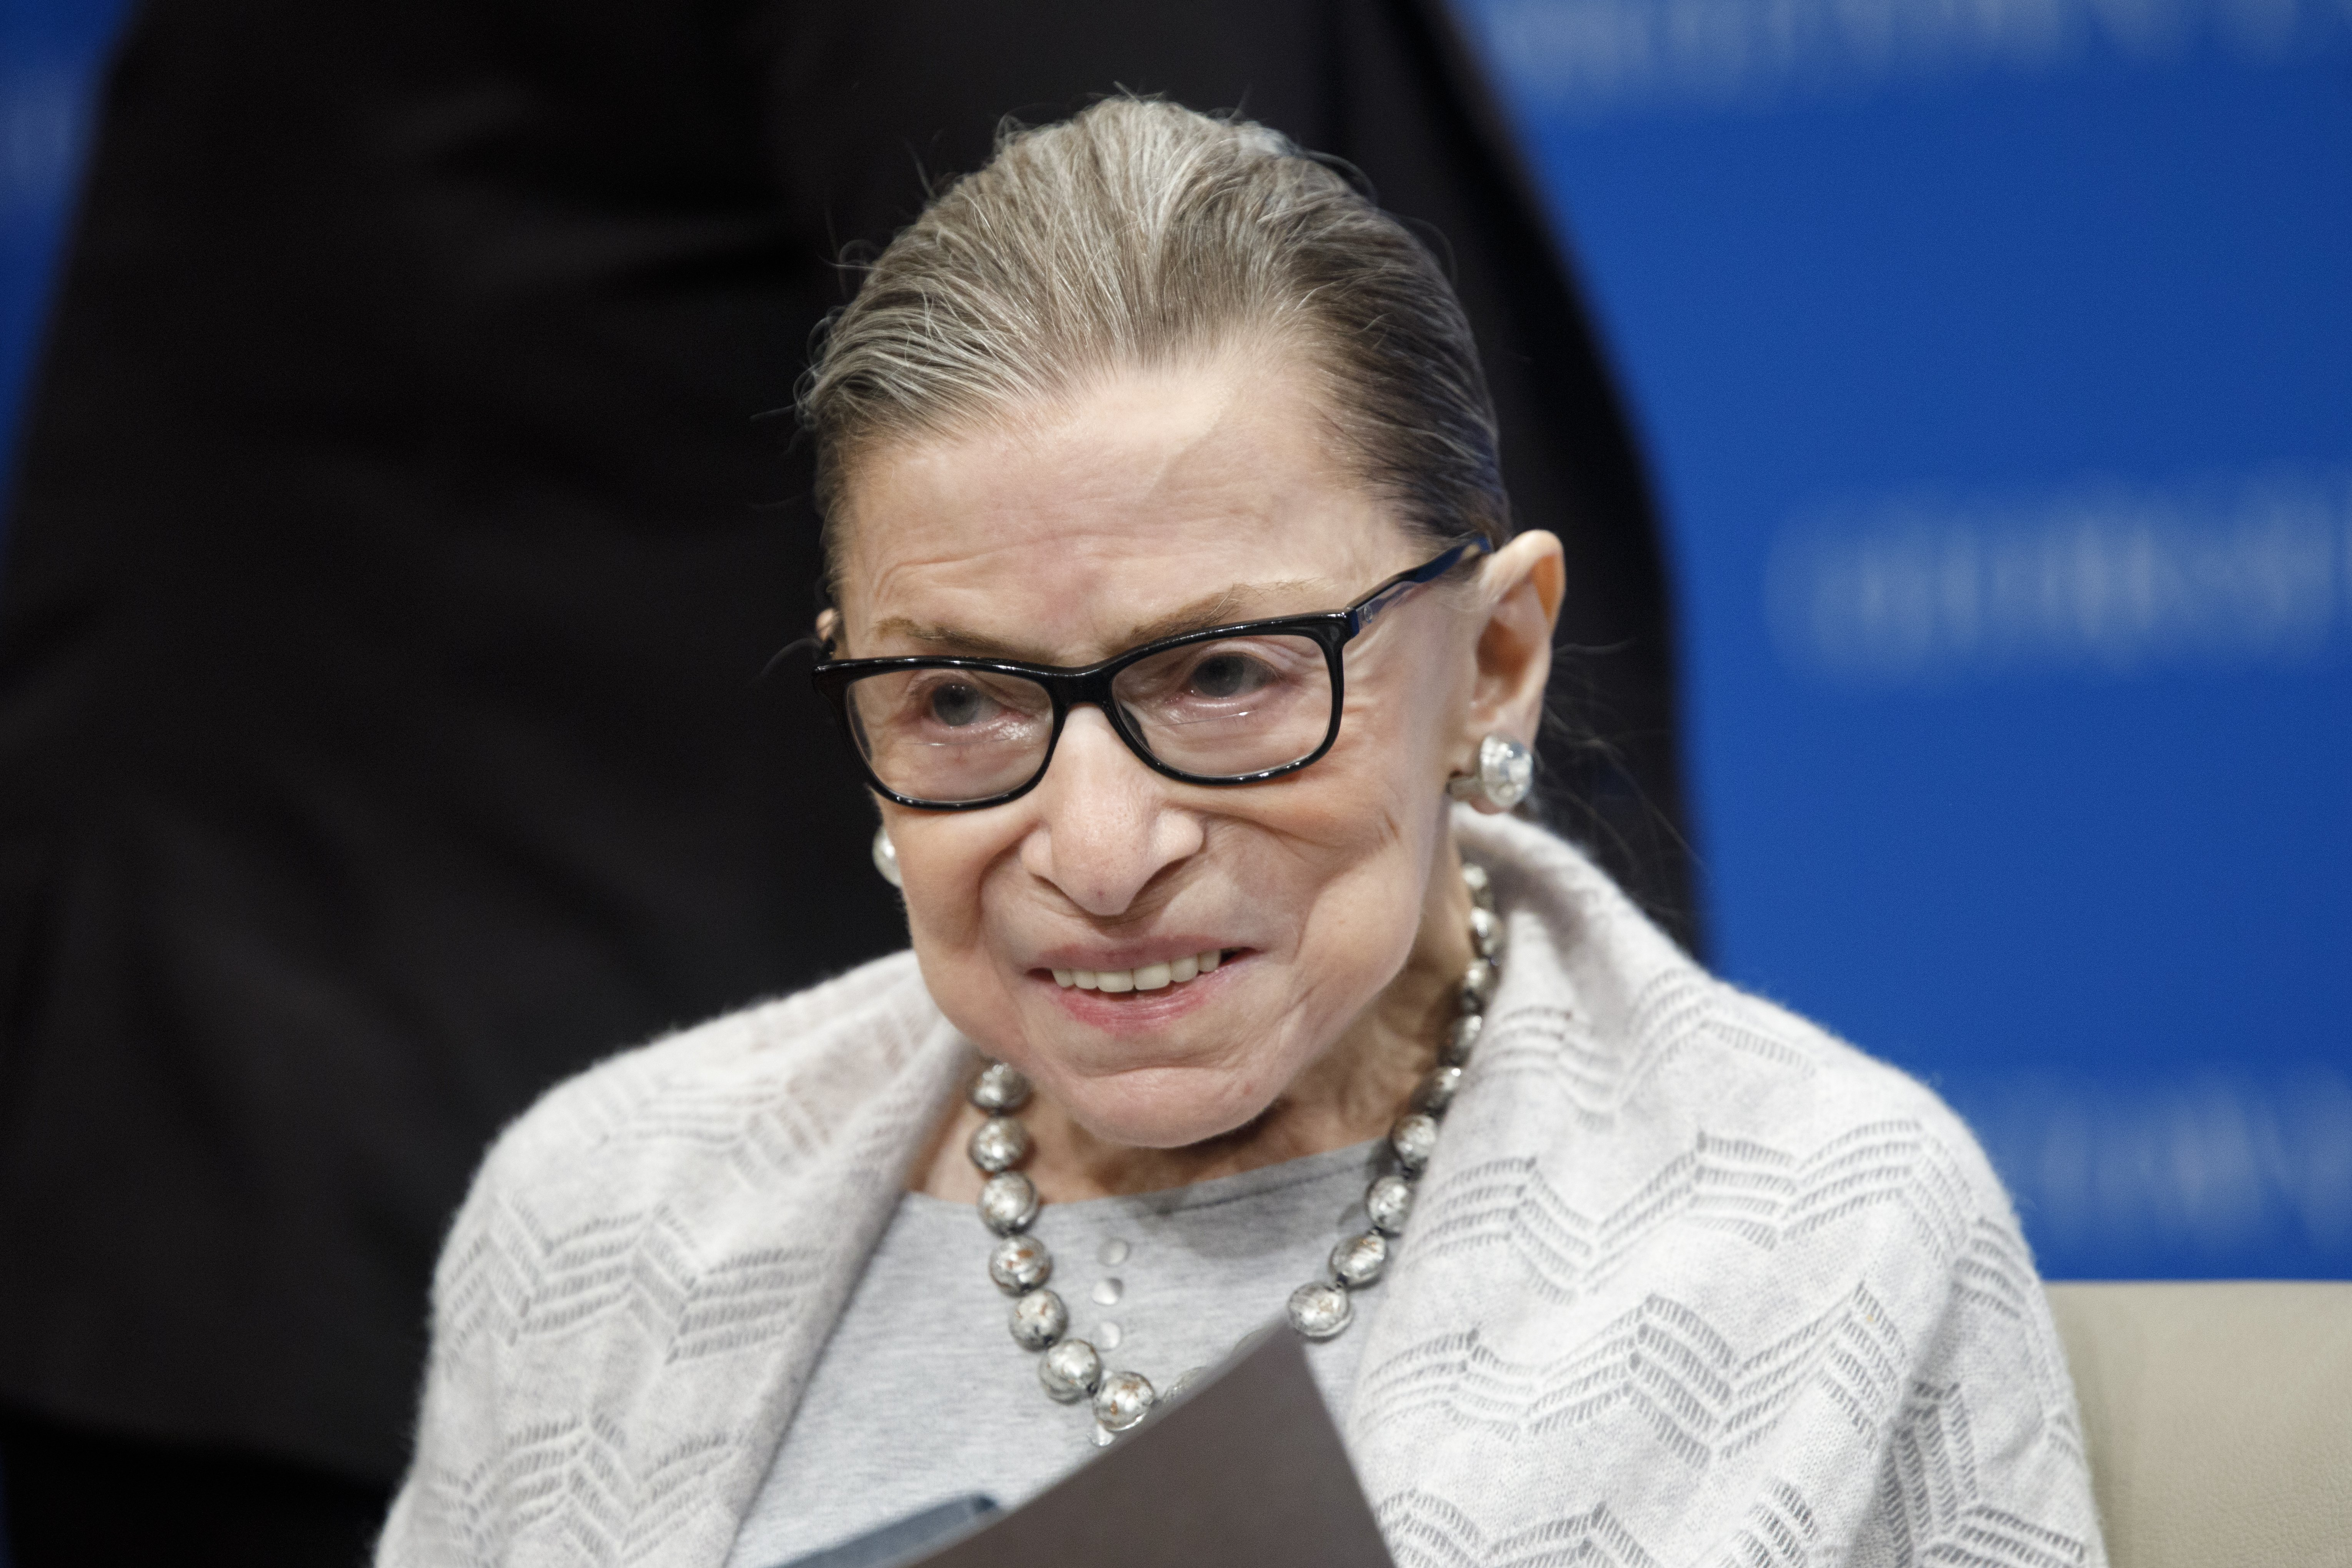 Late 87-year-od Supreme Court Justice Ruth Bader Ginsburg at the Georgetown Law Center in Washington, DC. | Photo: Getty Images